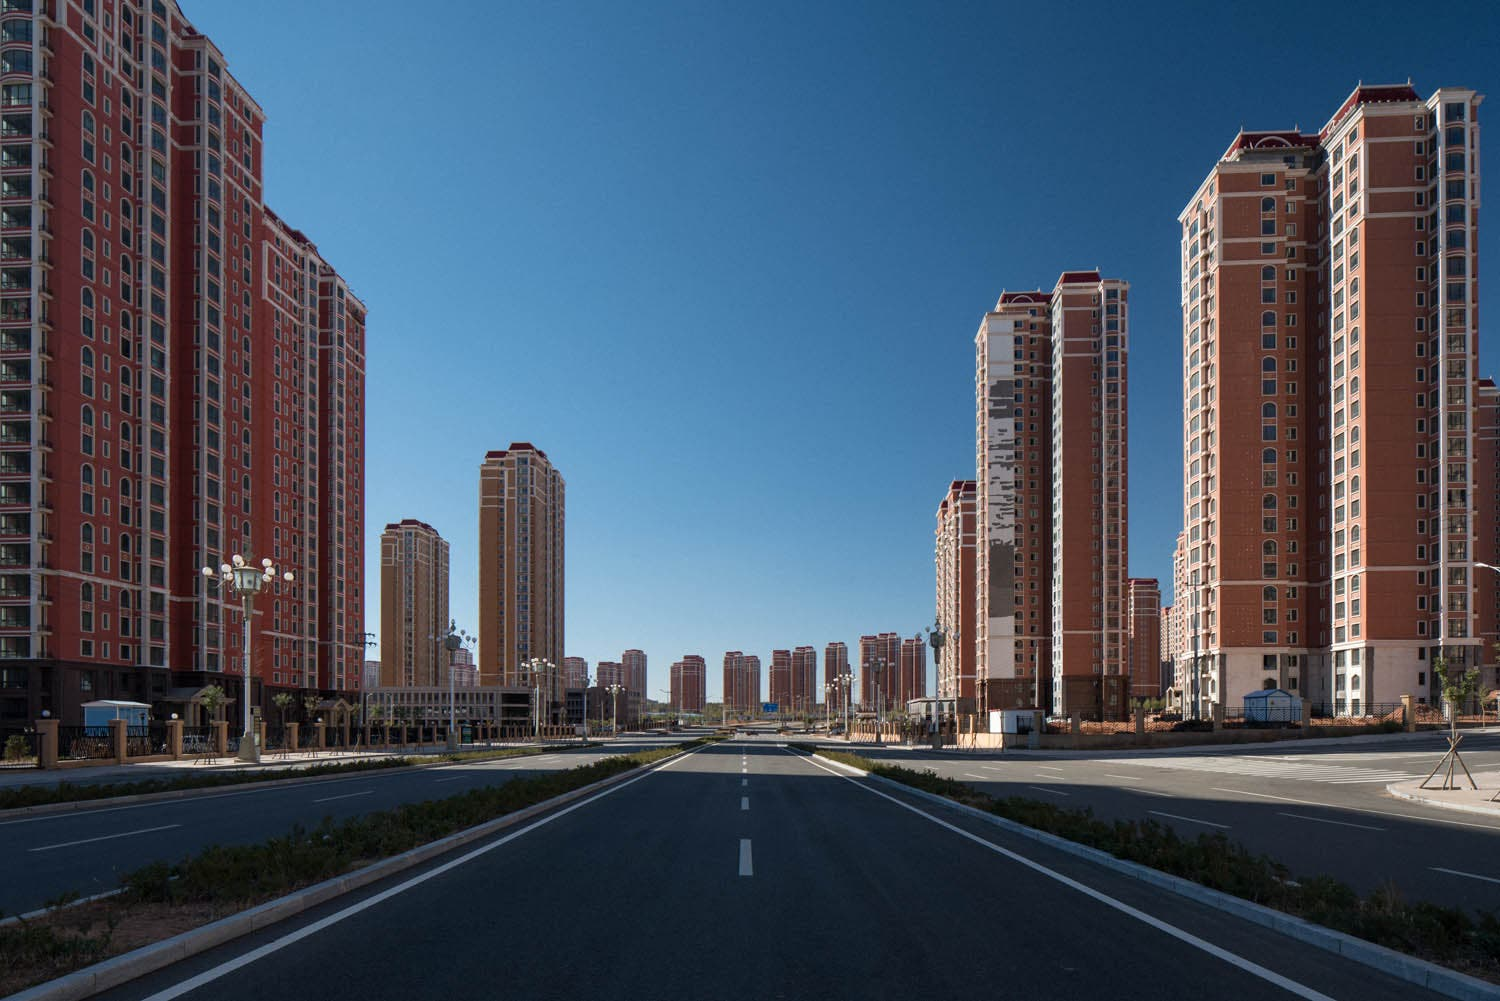 Ordos: An Architectural Photographic Study